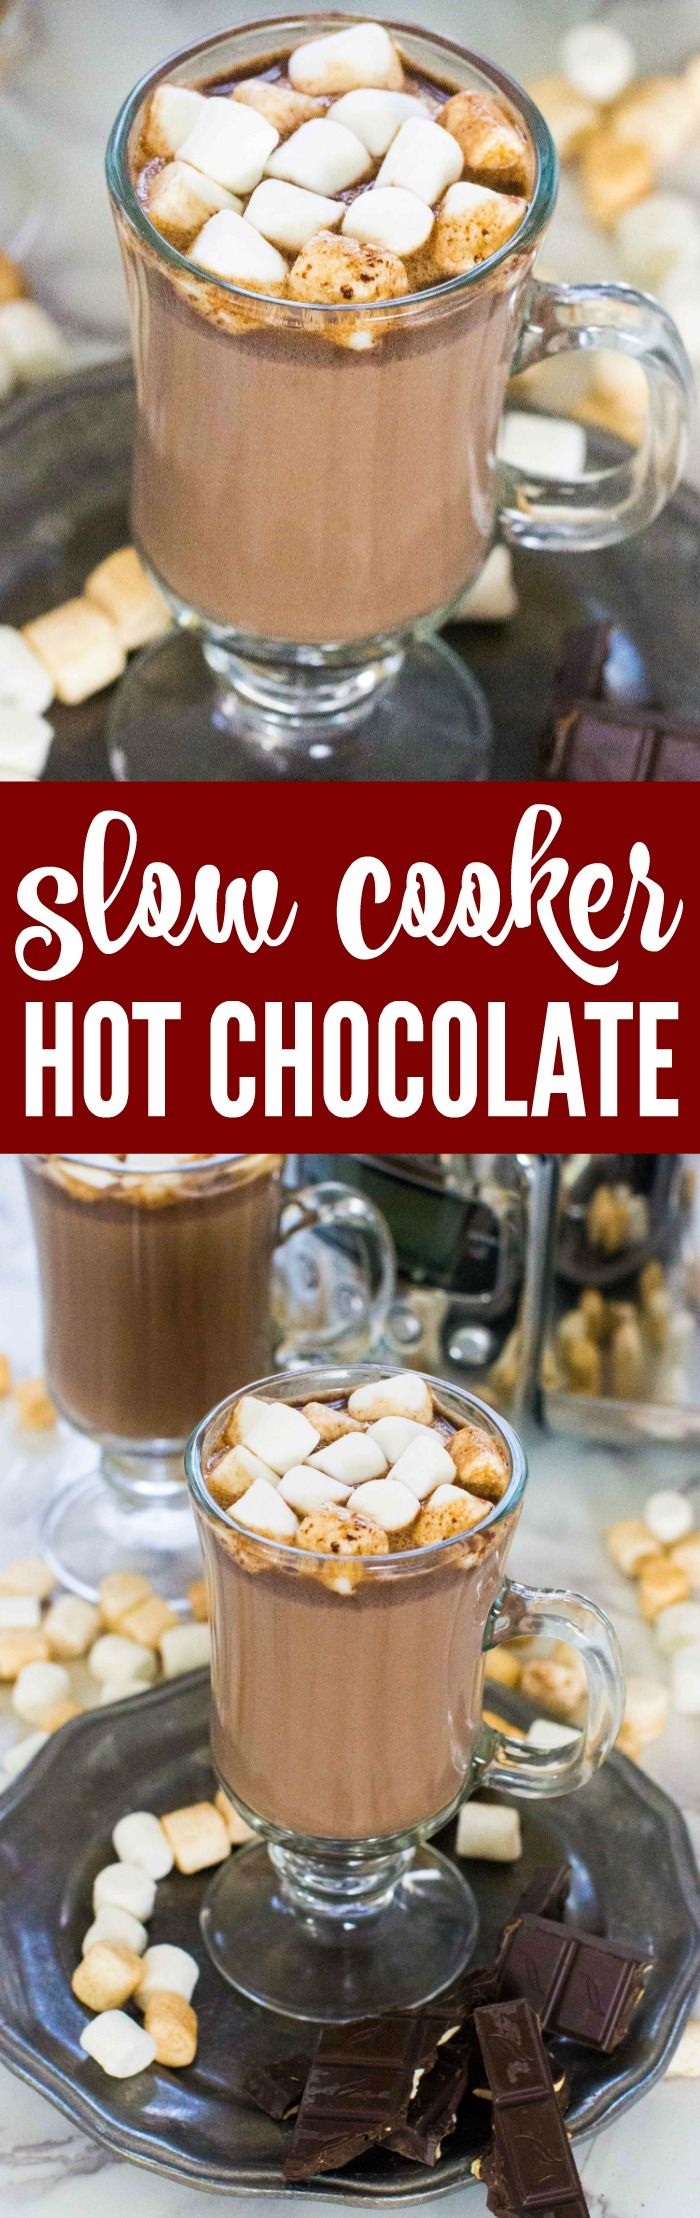 This Crockpot Hot Chocolate Recipe is a Simple and EASY Party Recipe and Holiday Treat for a Snow Day or Christmas Hot Drink Recipe in the Slow Cooker!